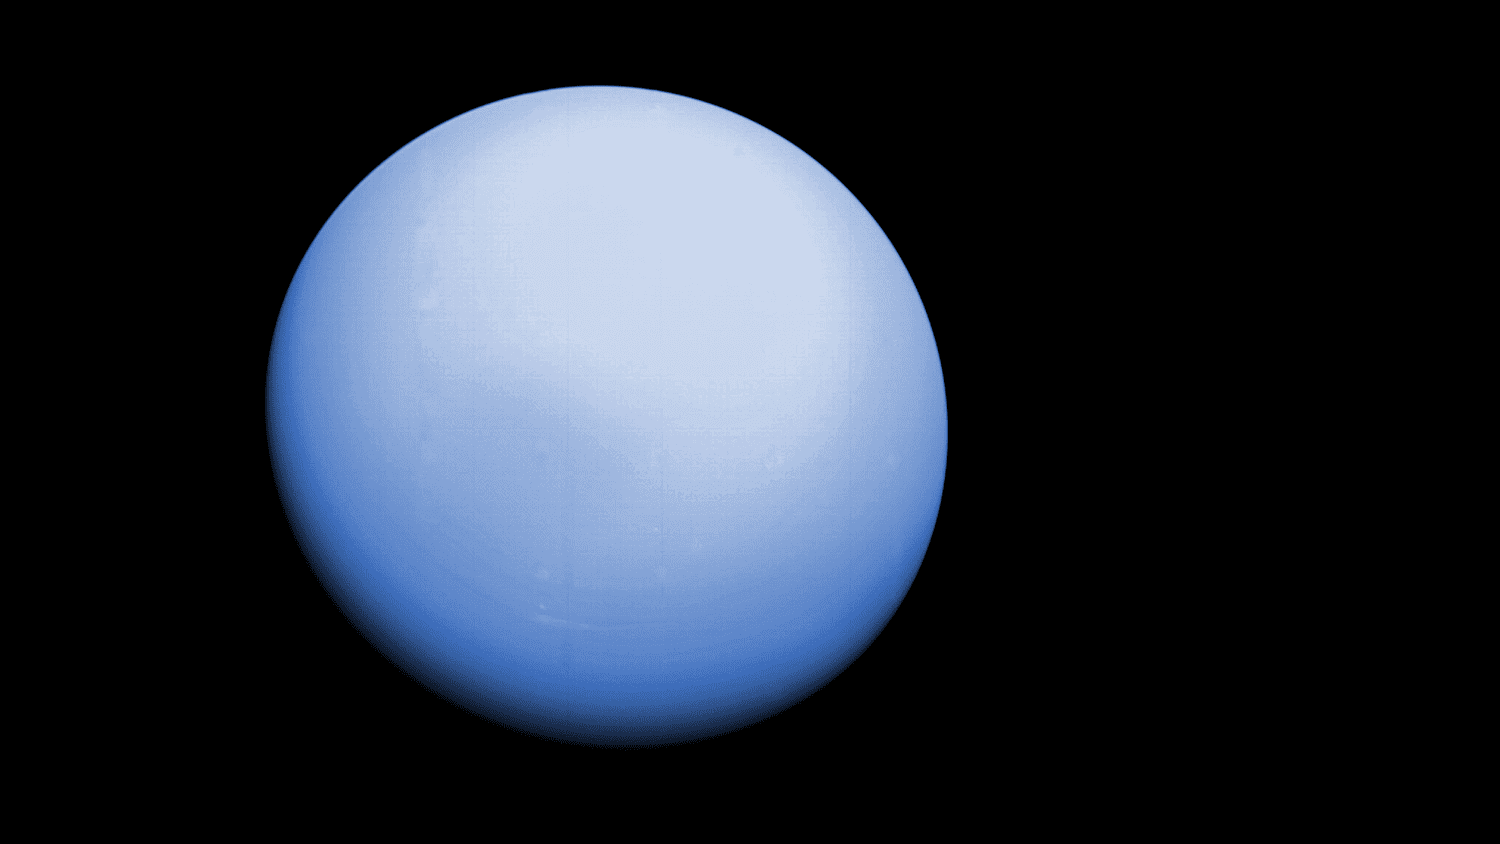 Uranus, or the Earth covered in unbroken water